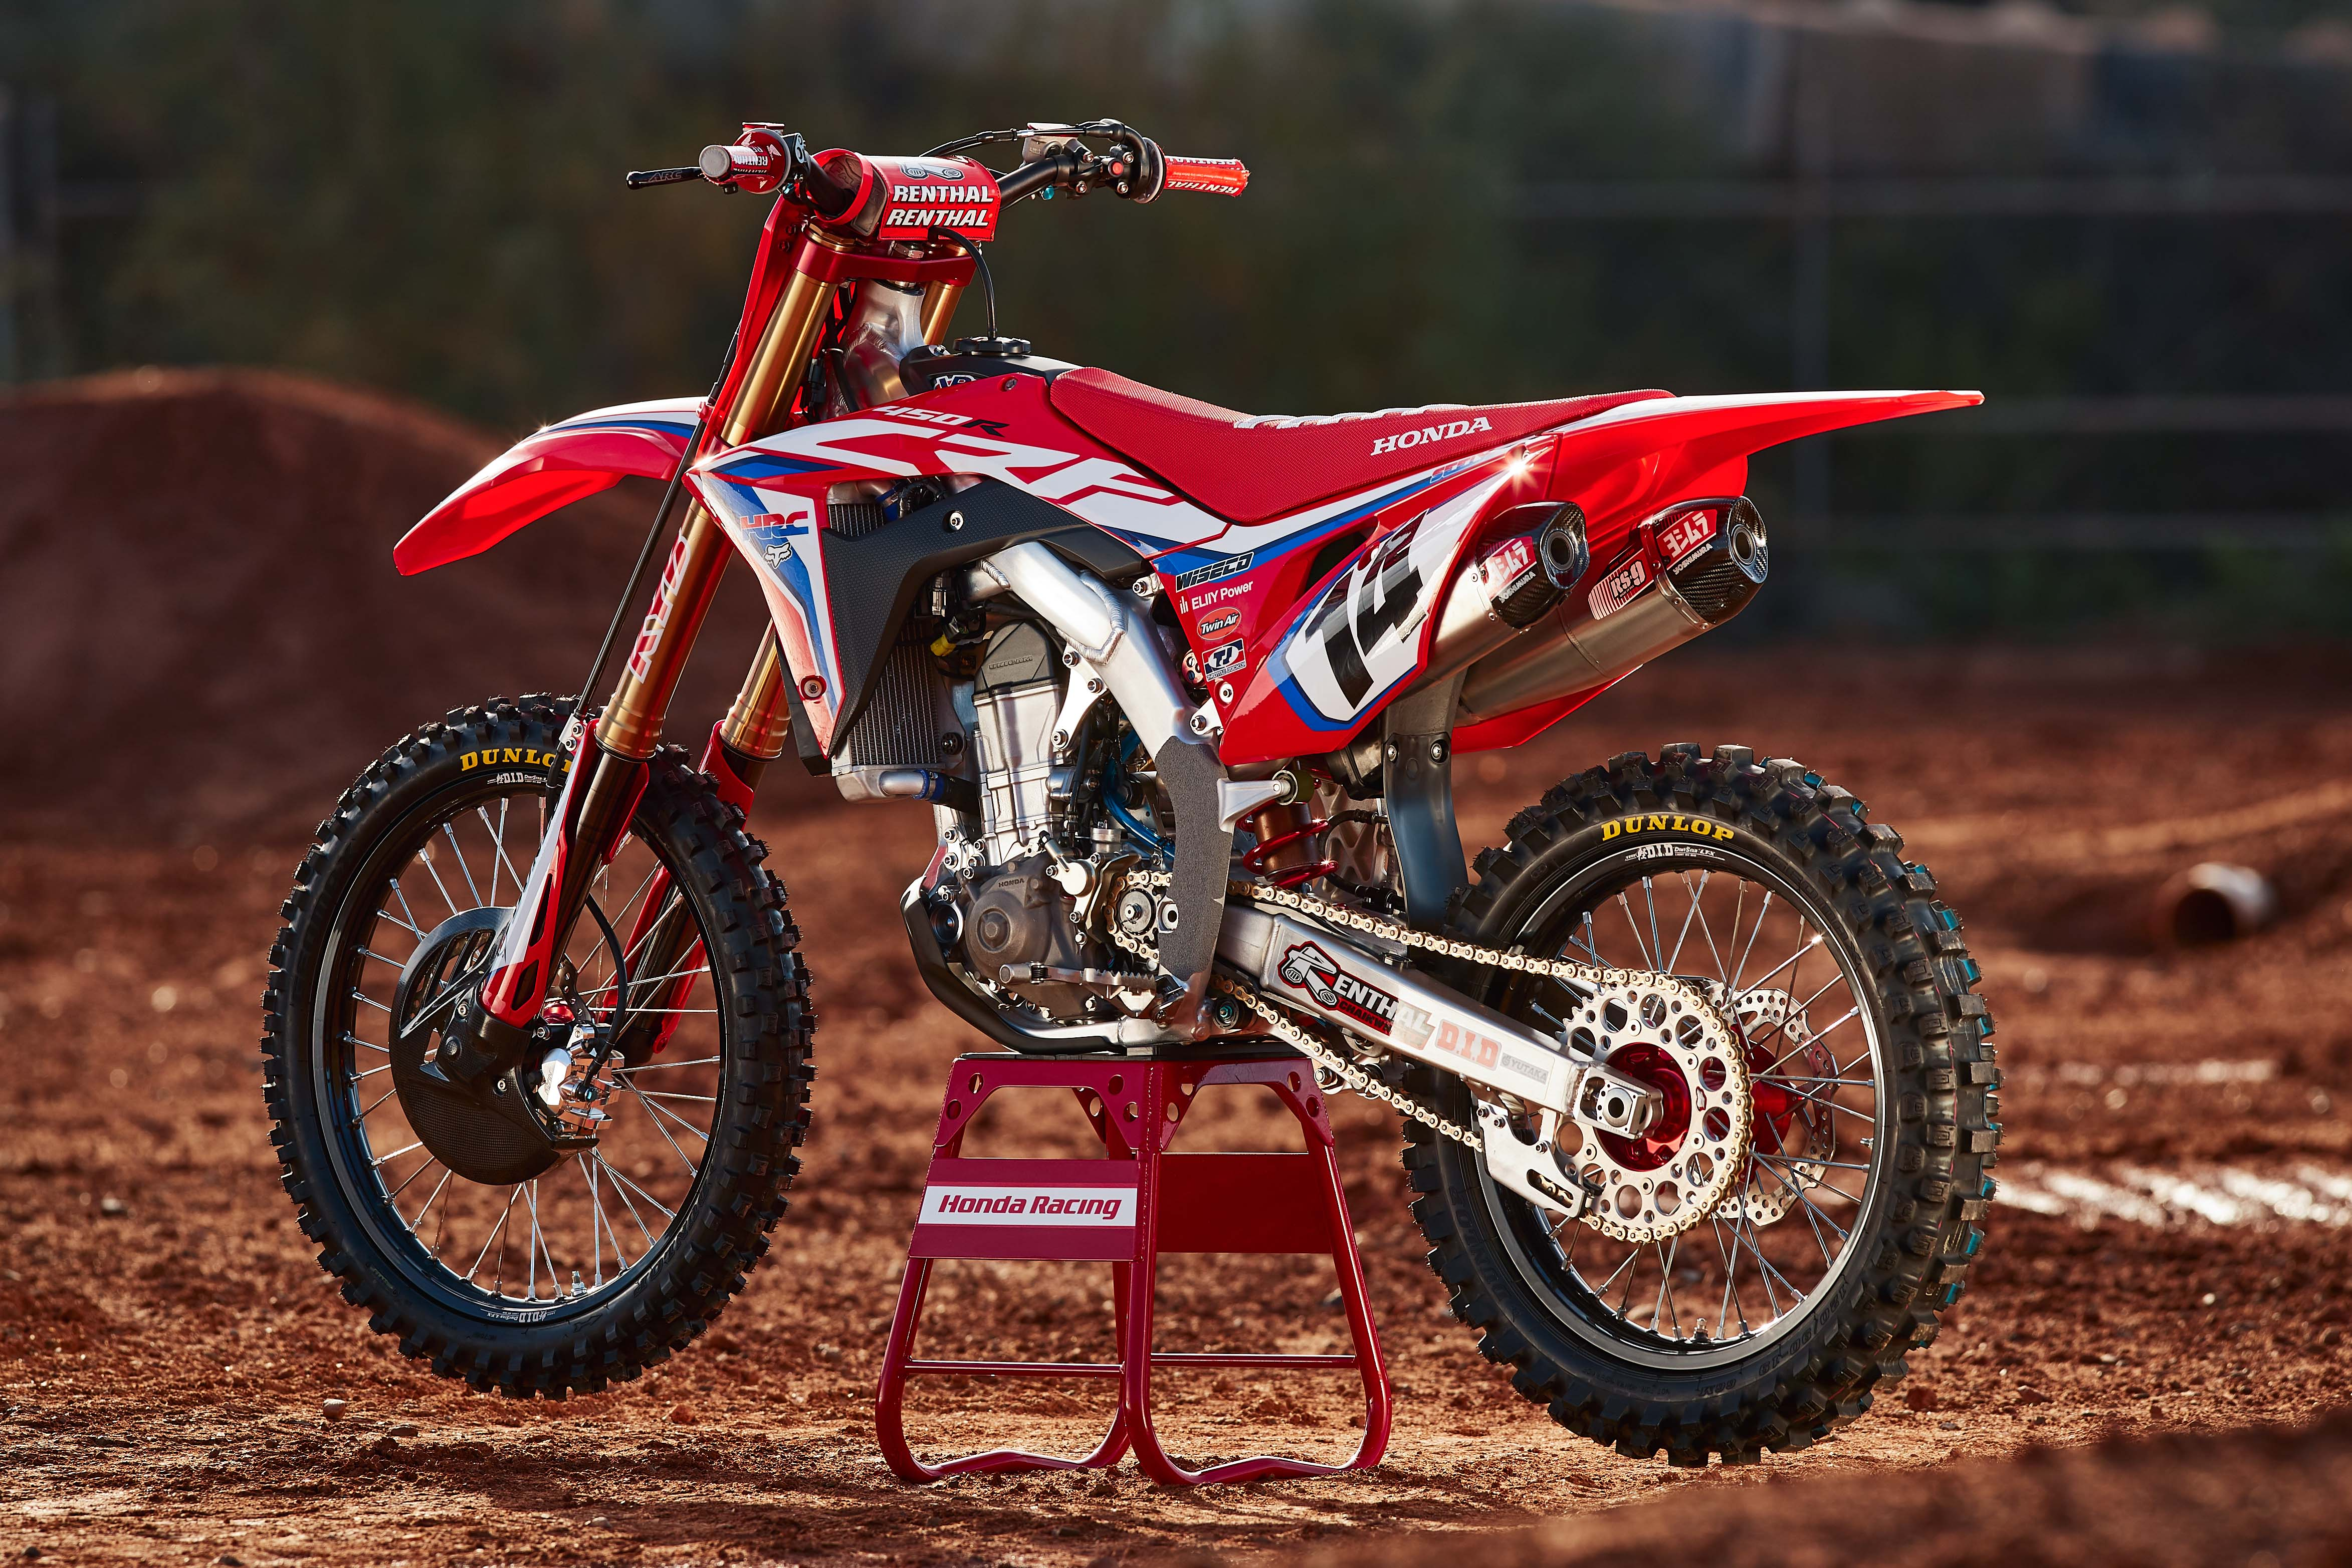 Wiseco Renews Partnership With Team Honda Hrc For 2019